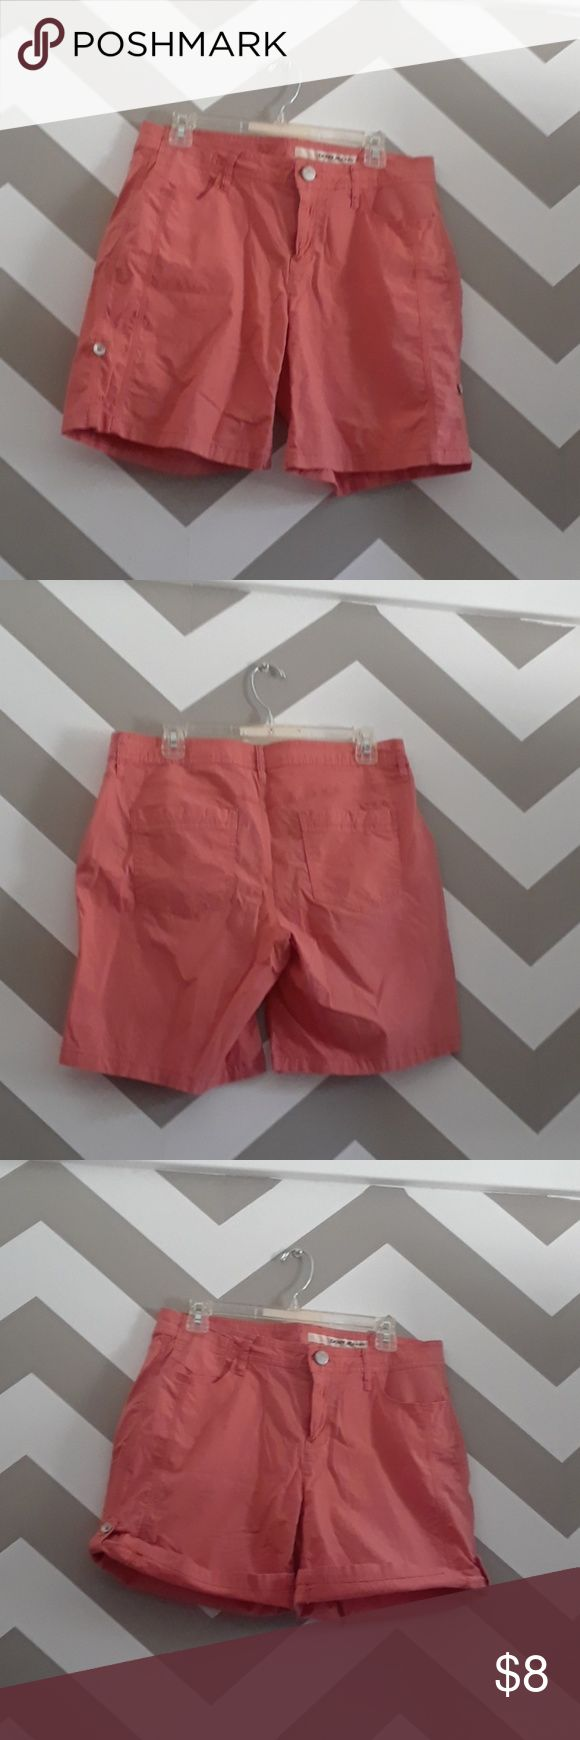 DKNY Jeans coral shorts Coral cotton shorts five pockets and tab roll up legs. Smoke-free home. Dkny Shorts